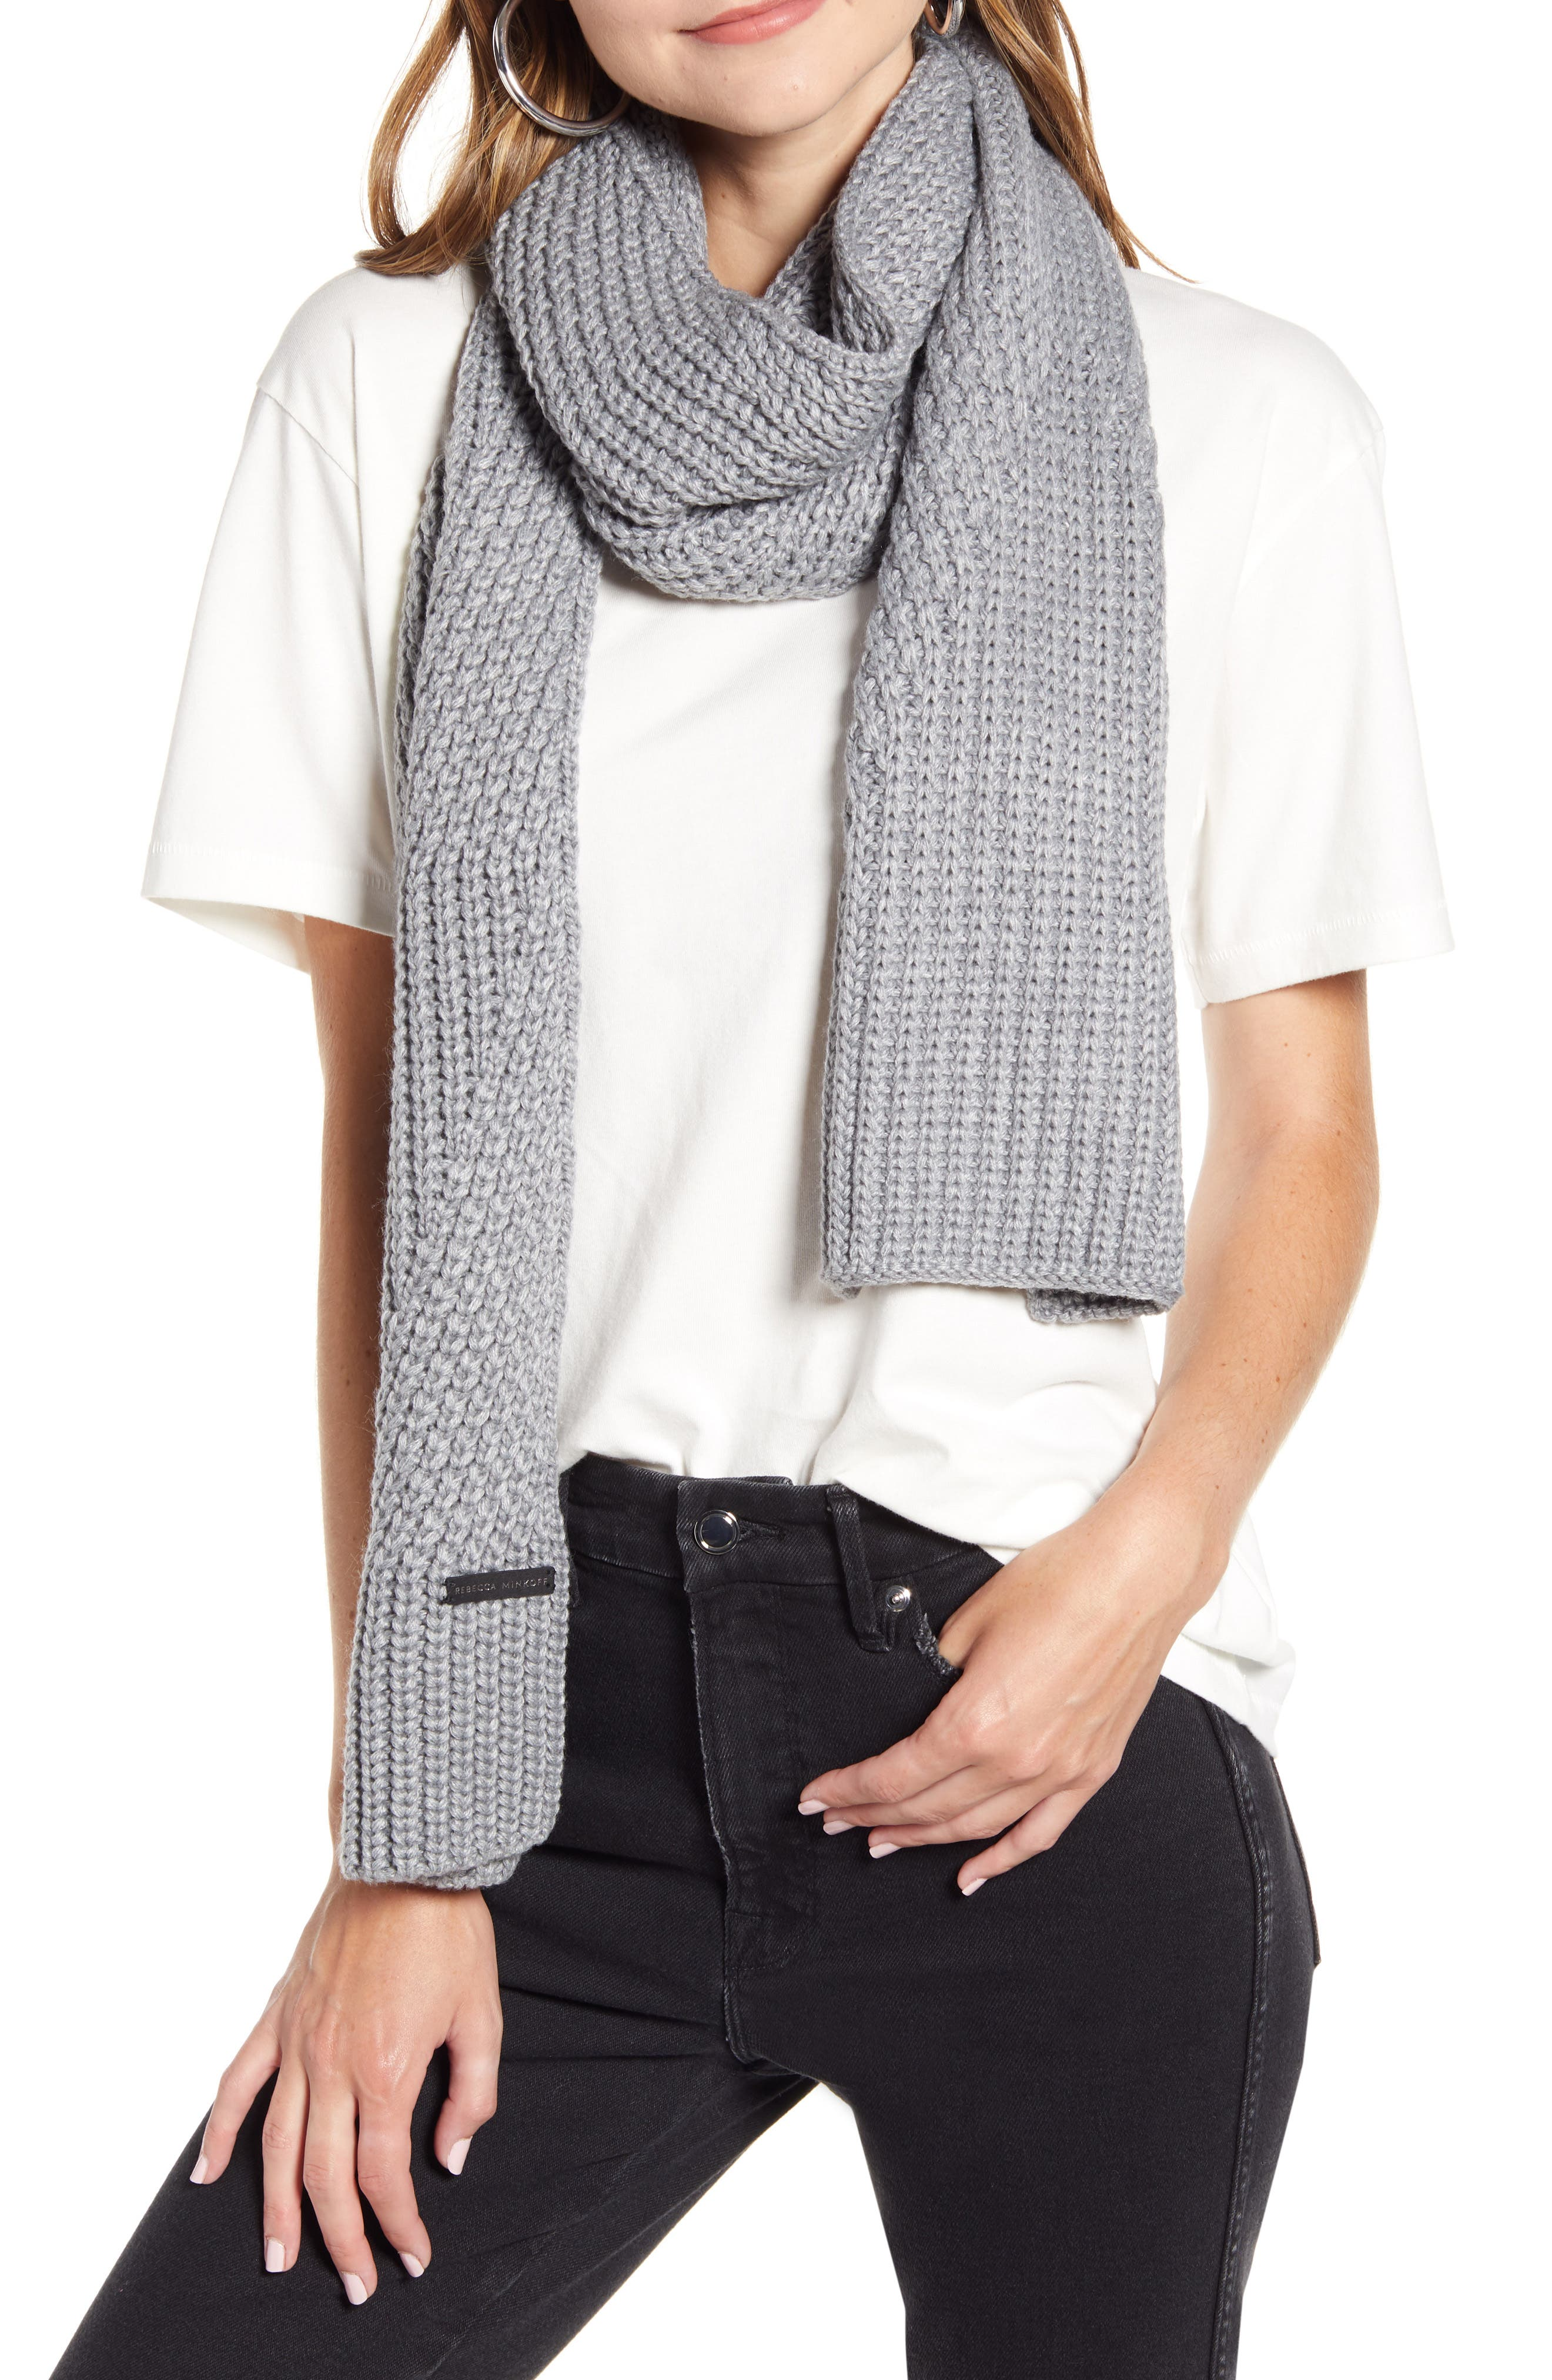 Mixed stitchwork lends subtle depth to this soft and cozy knit scarf. Style Name: Rebecca Minkoff Traveling Rib Scarf. Style Number: 5862495 1. Available in stores.